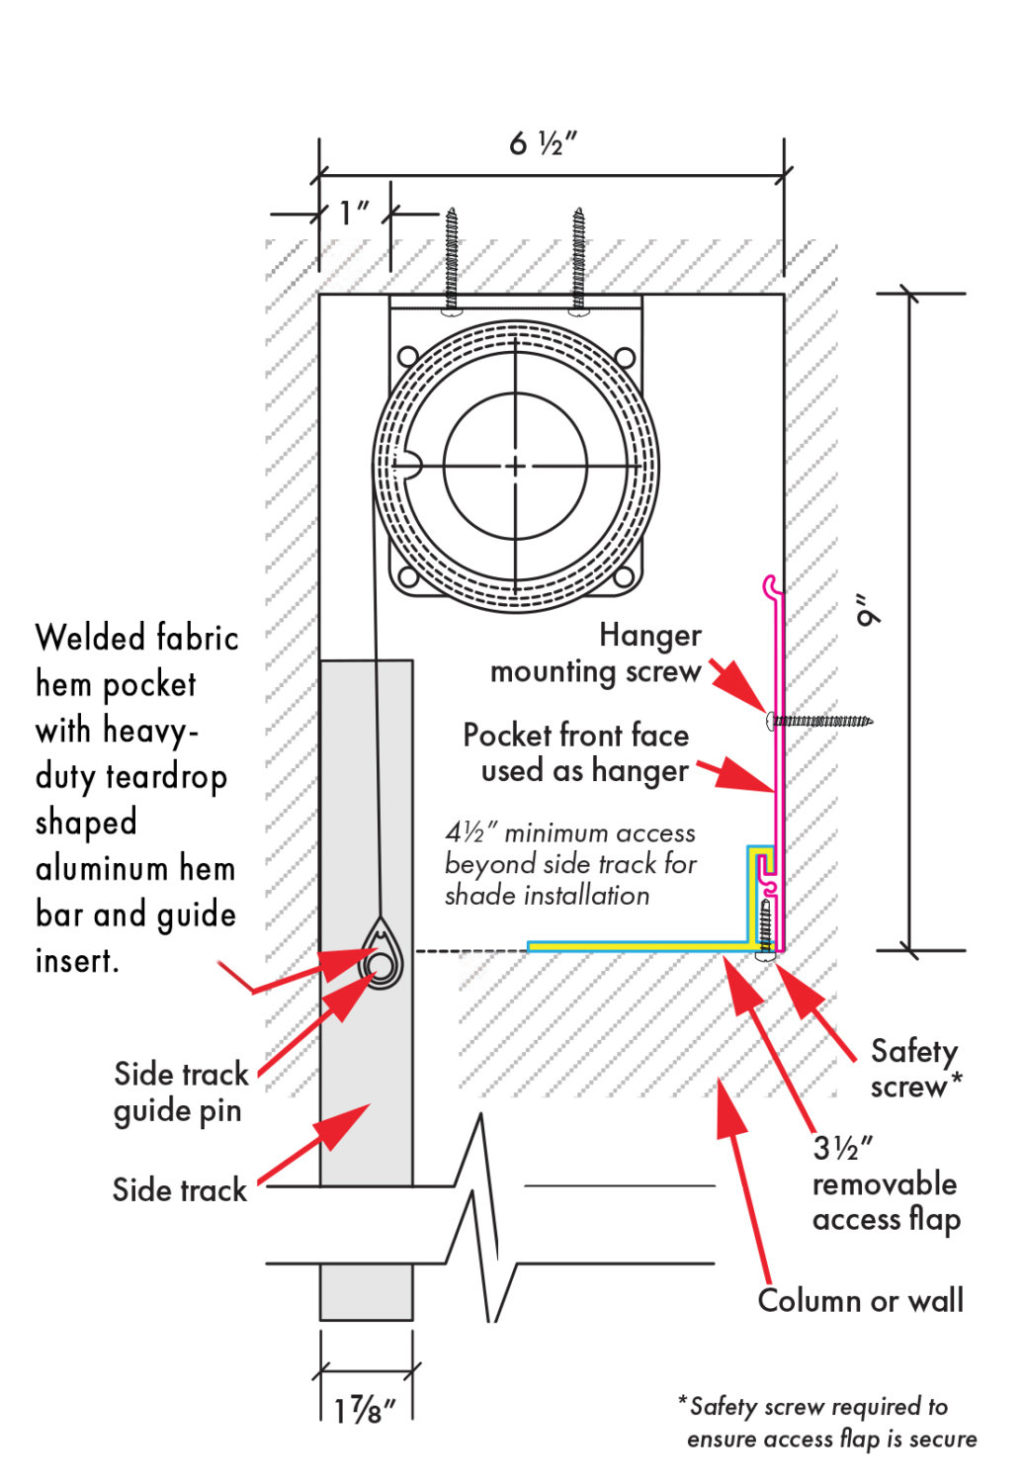 Insolroll Oasis 2800 pocket installation diagram